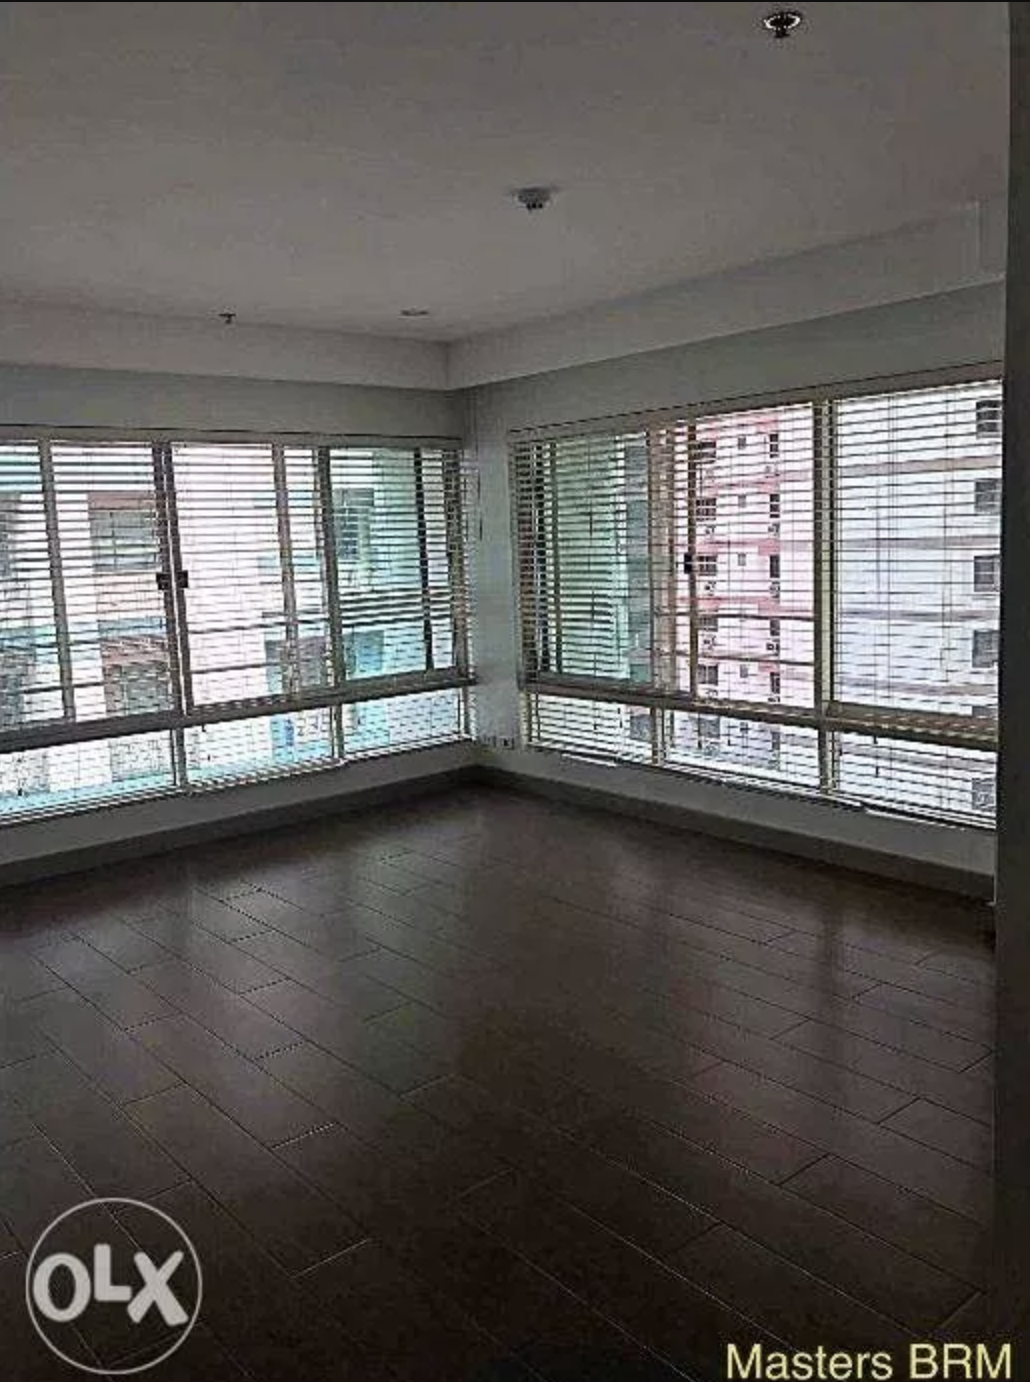 - NATURAL LIGHT & HARDWOOD FLOORS  Someone needs to jump on this propertyin Salcedo stat! Look at those floors! Look at those windows!